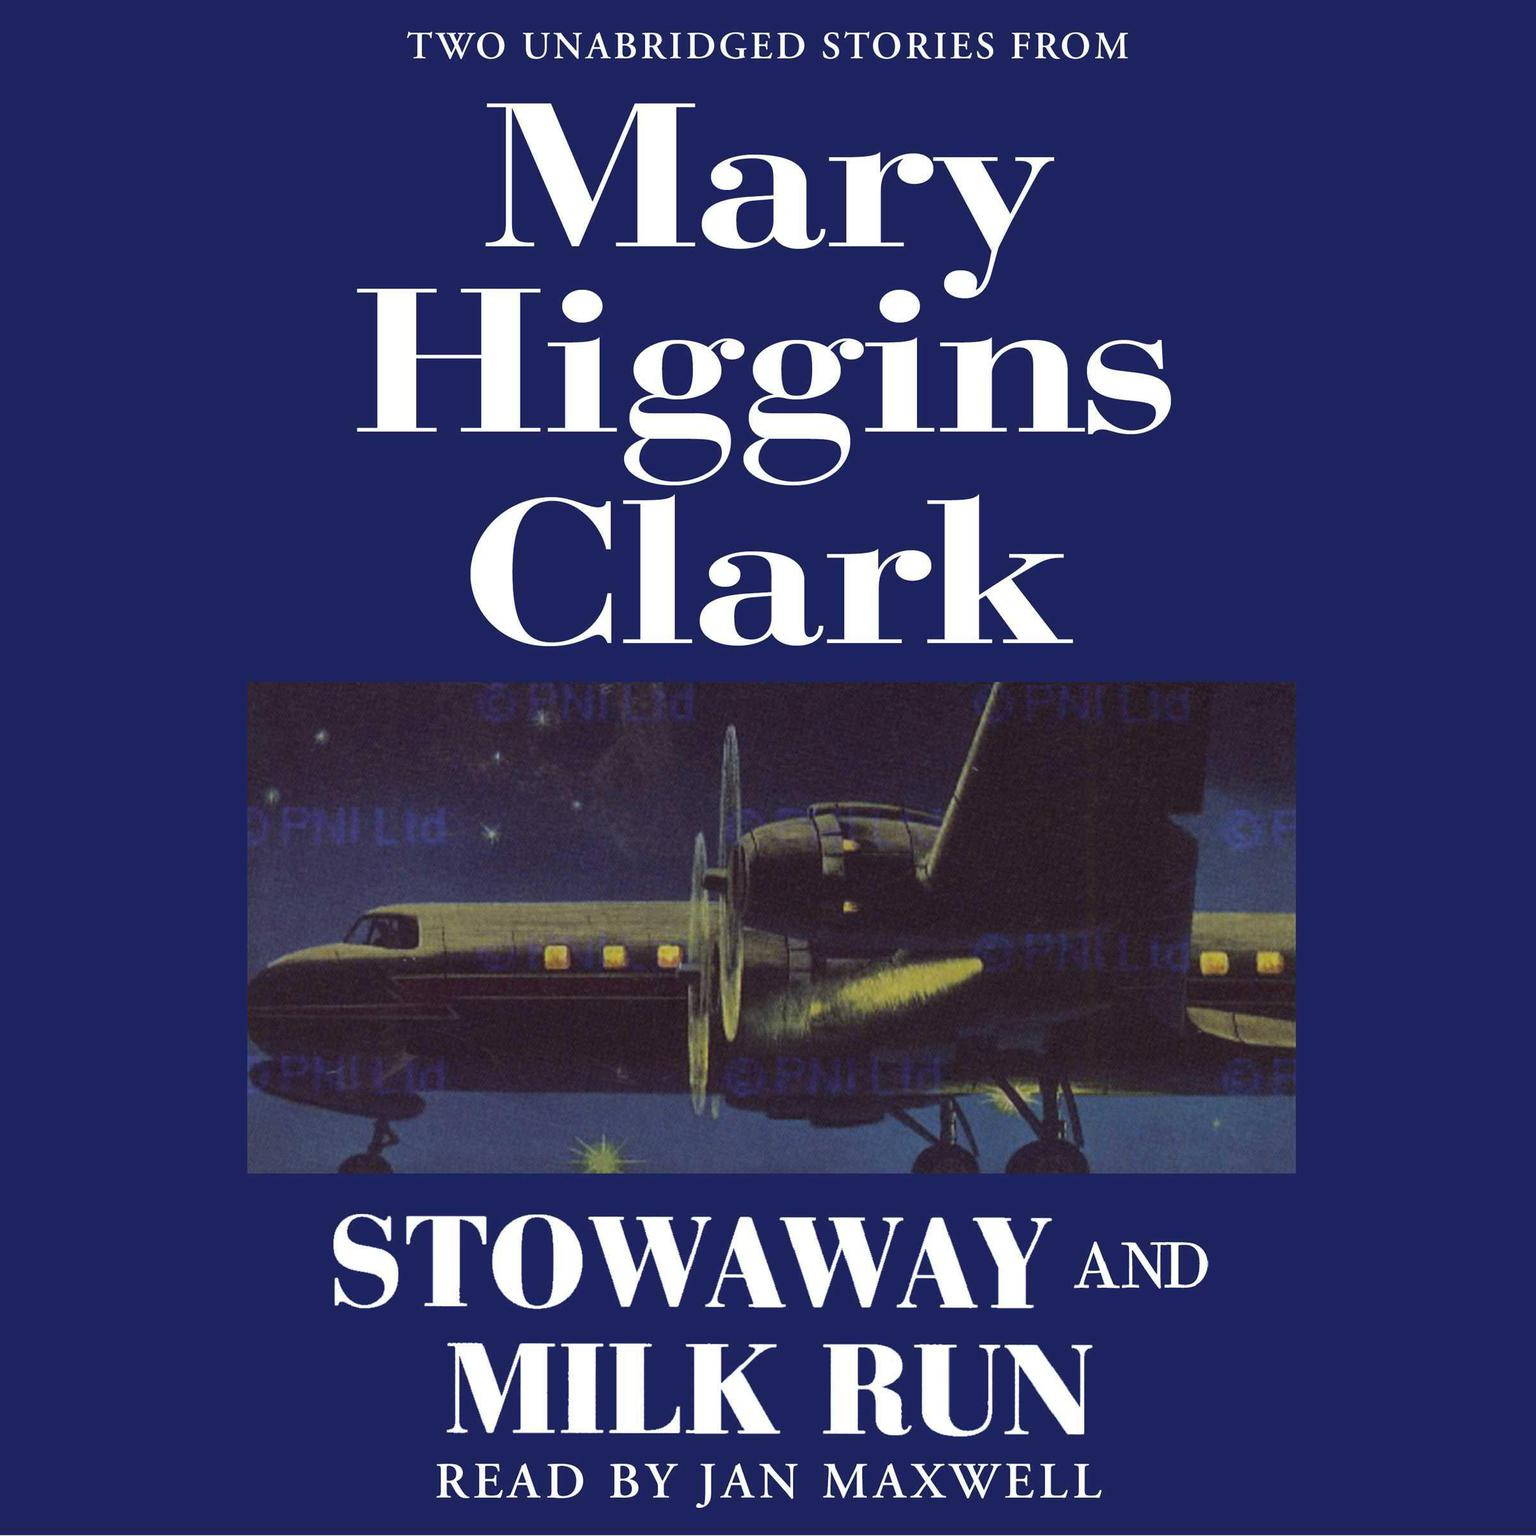 Printable Stowaway and Milk Run: Two Unabridged Stories From Mary Higgins Clark Audiobook Cover Art